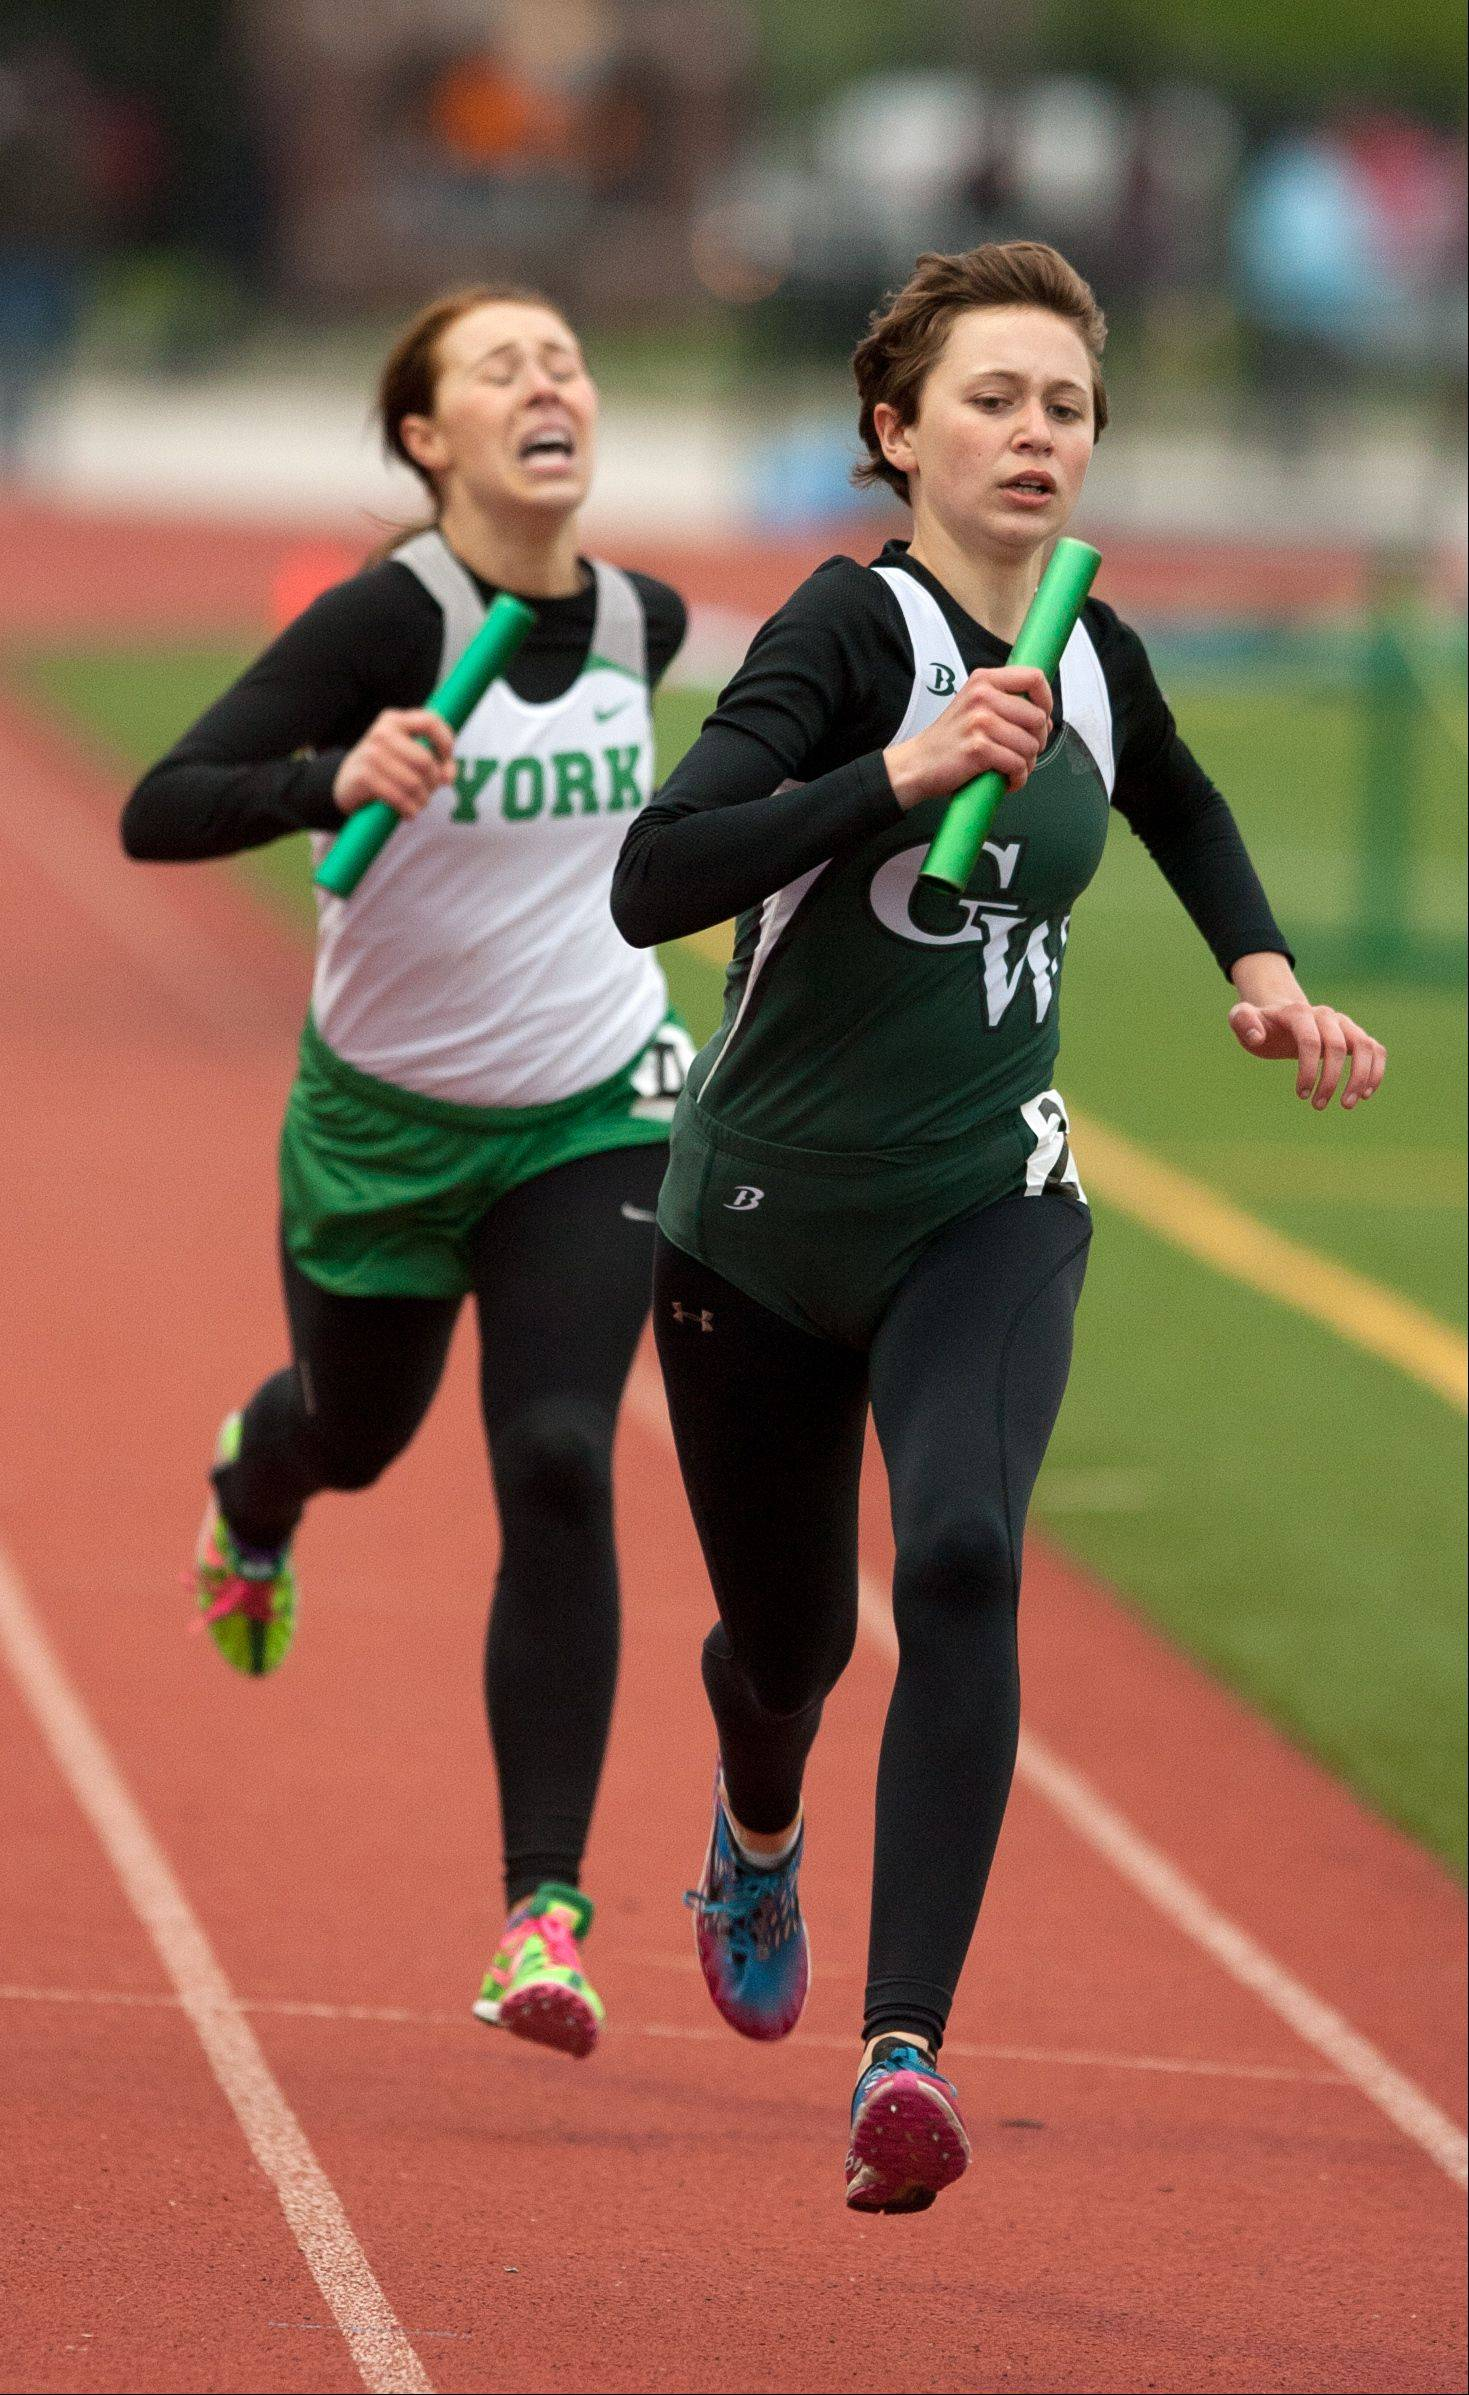 Glenbard West's Christina Sedall anchors a 3,200 Meter Relay second play finish over York's Alyssa Adam during the York Girls Track and Field Sectional meet.